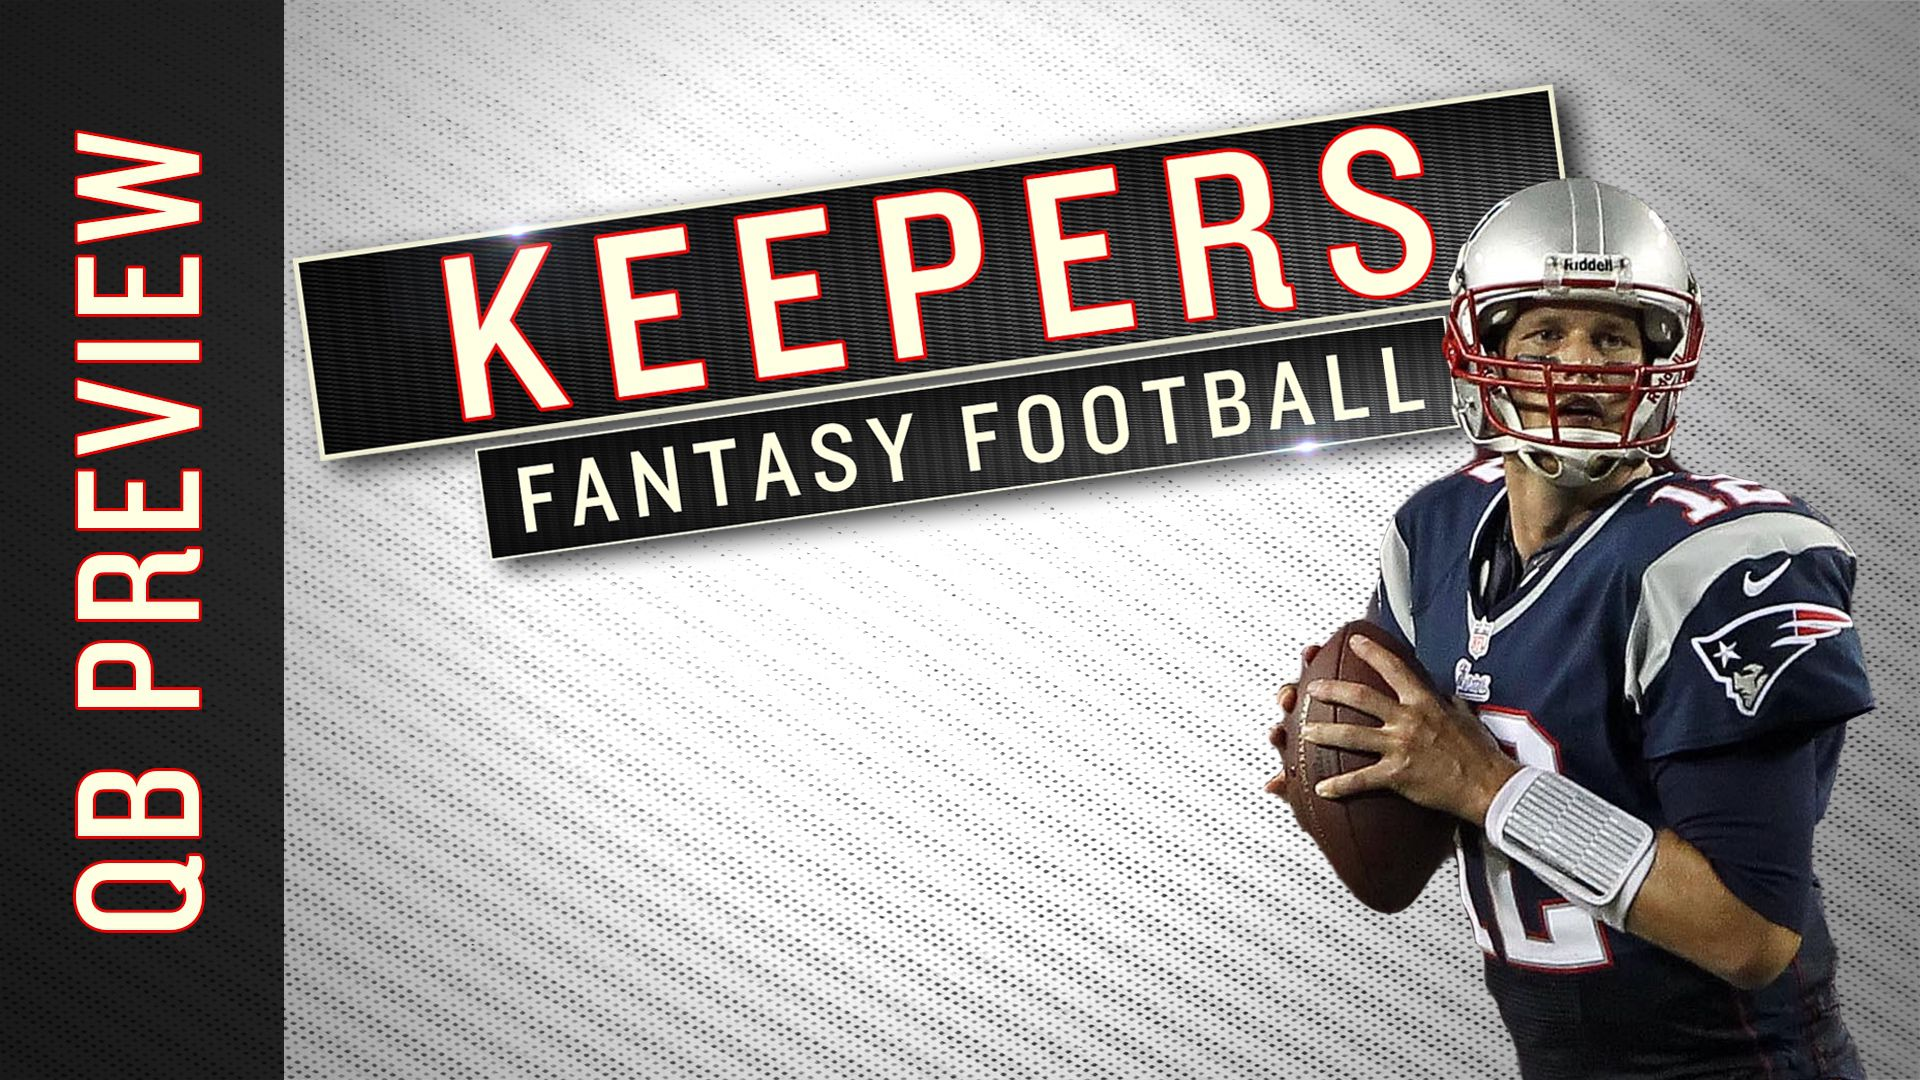 2016 fantasy football rankings: Top 150 overall